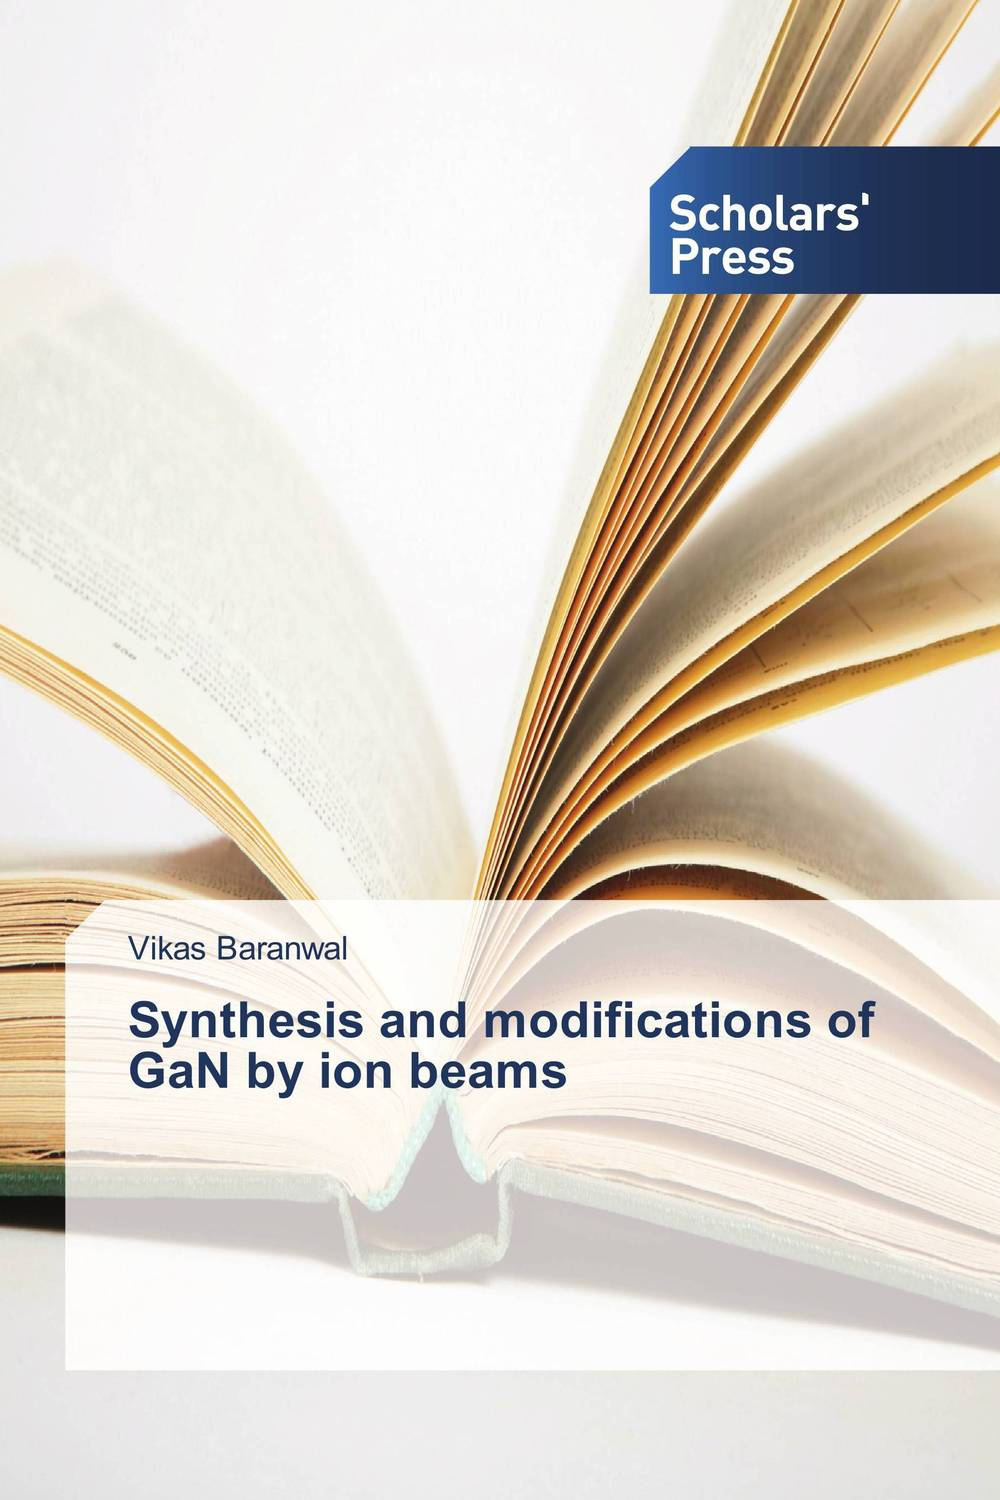 Synthesis and modifications of GaN by ion beams d rakesh s s kalyan kamal and sumair faisal ahmed synthesis